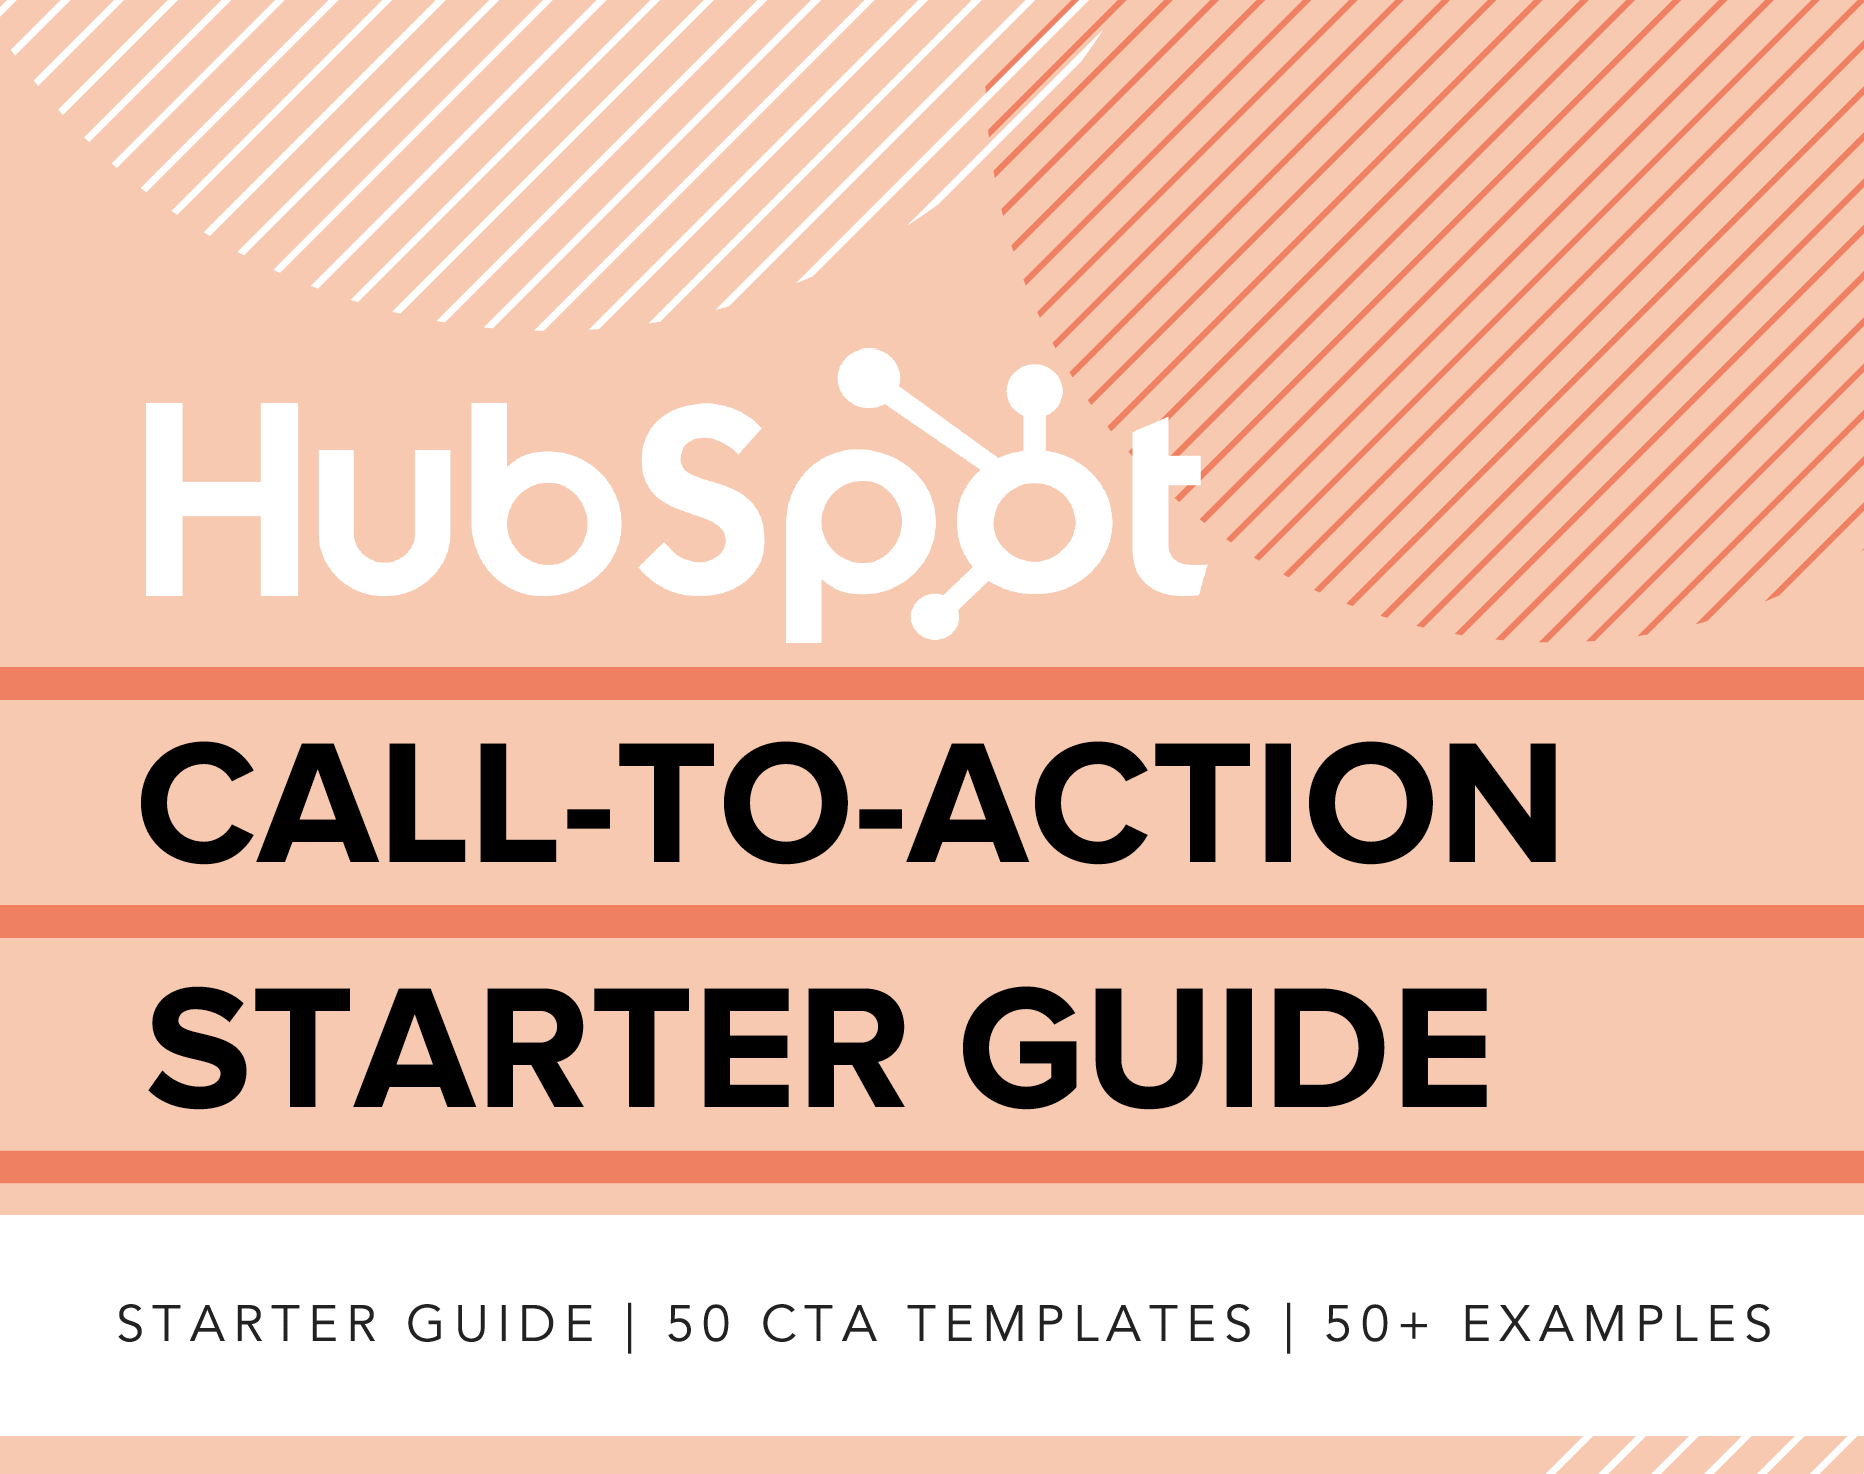 Call-to-Action 1